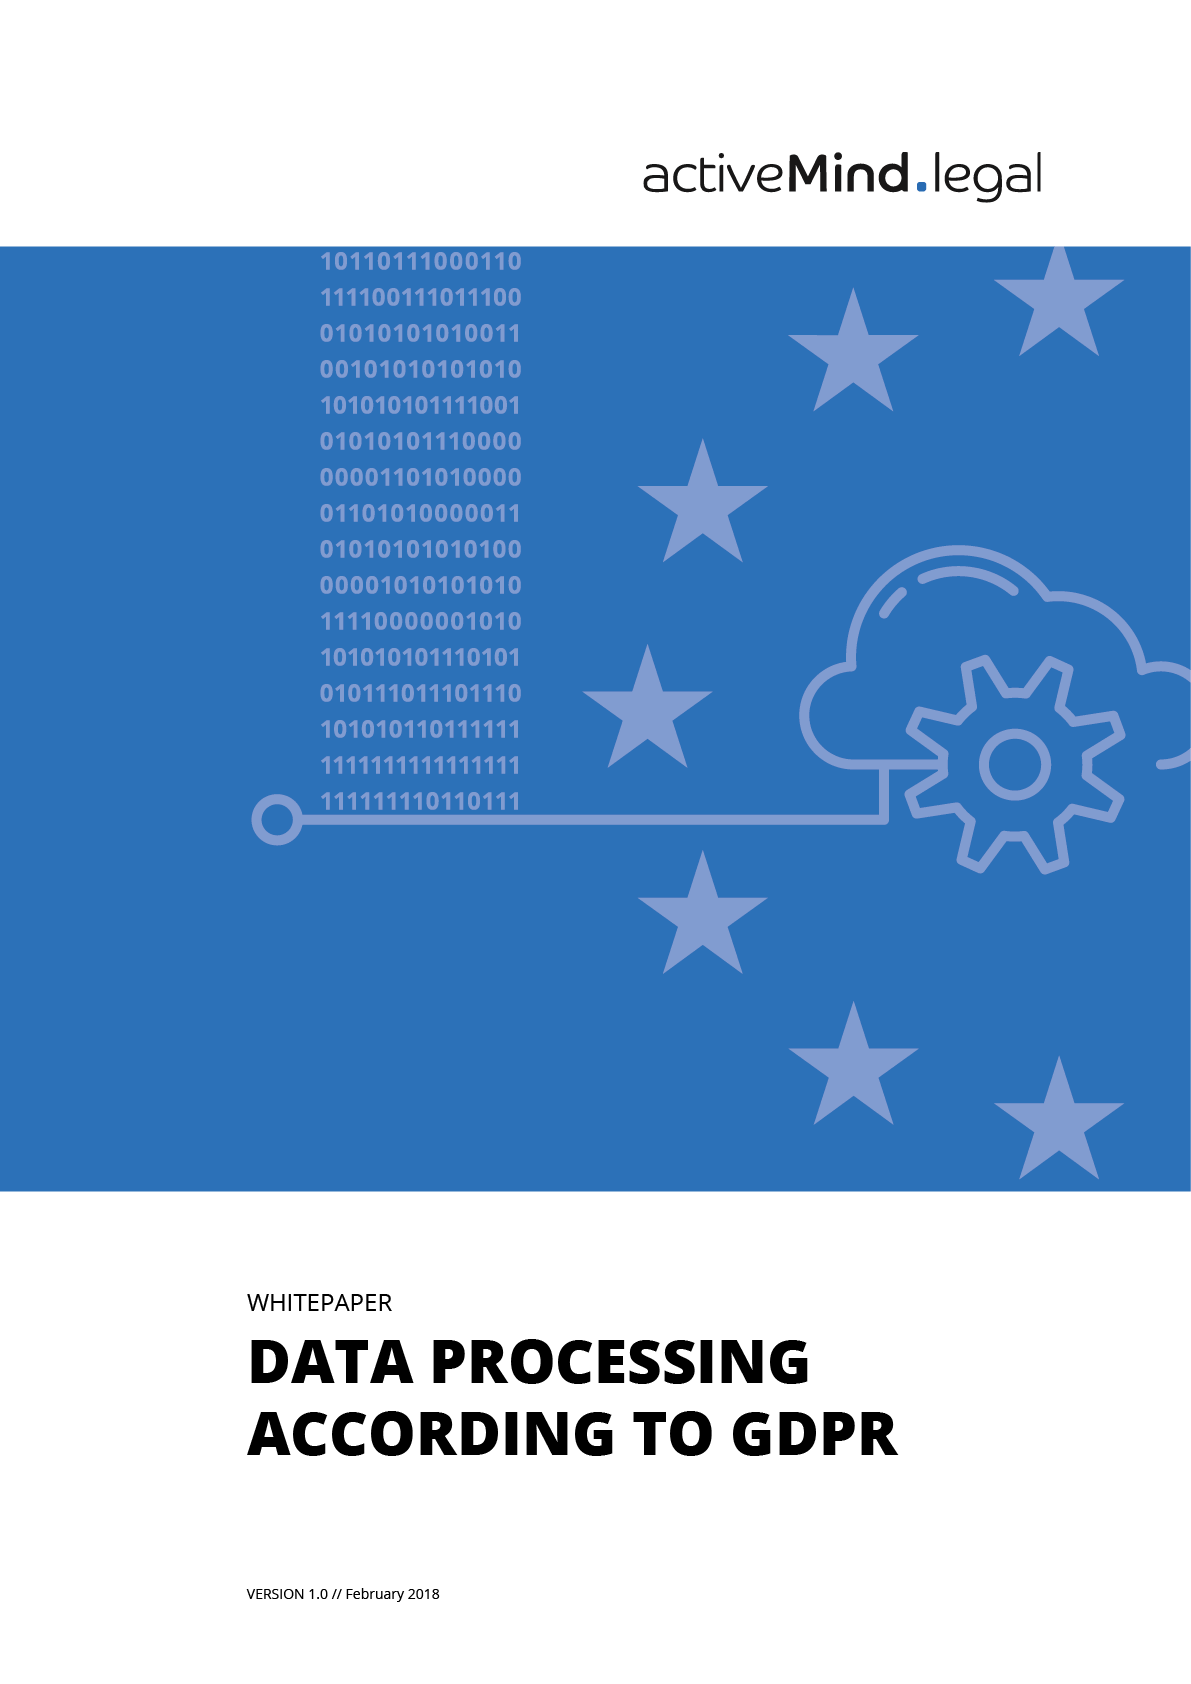 Cover whitepaper data processing on behalf according to GDPR